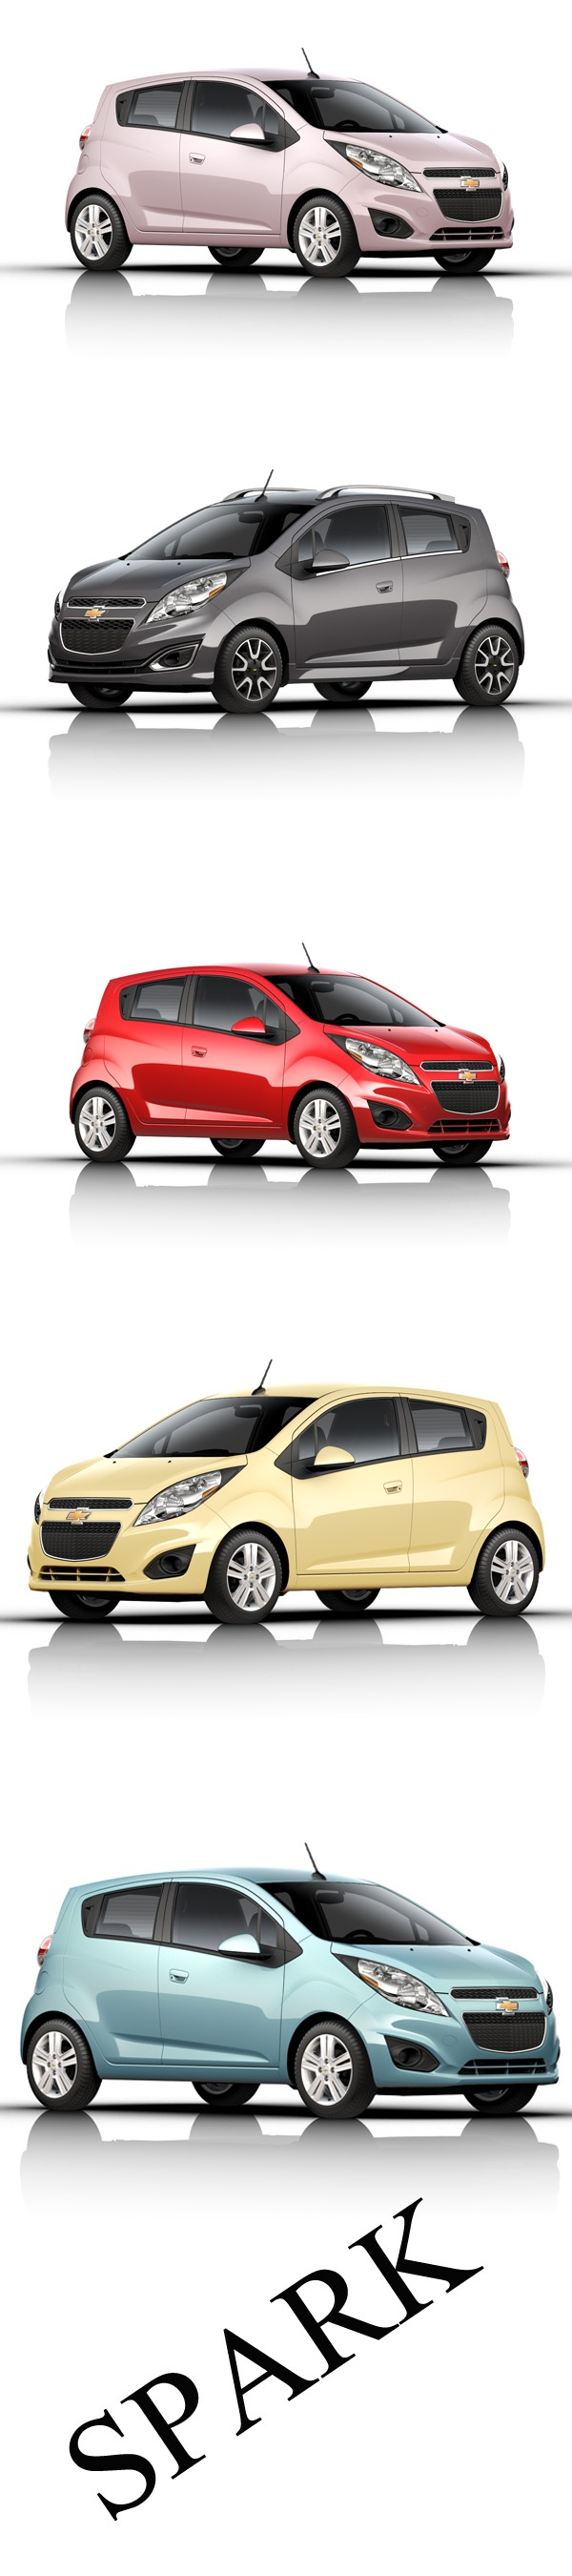 Chevy Spark For sale at Fitzaptrick Auto Center starting at $12,995     www.fitzpatrickauto.com